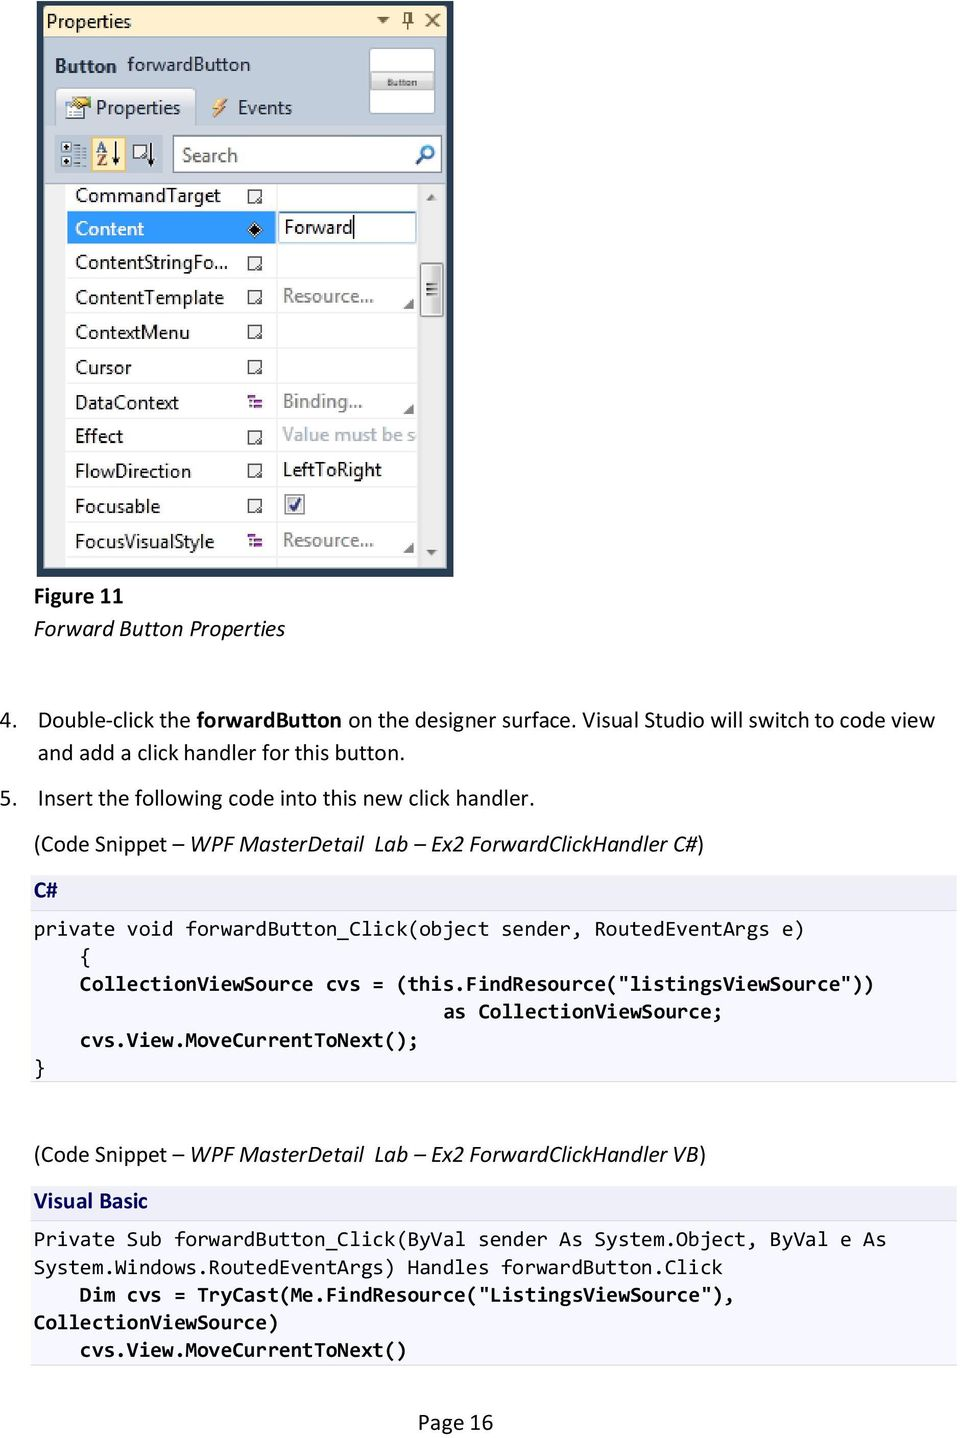 (Code Snippet WPF MasterDetail Lab Ex2 ForwardClickHandler C#) C# private void forwardbutton_click(object sender, RoutedEventArgs e) { CollectionViewSource cvs = (this.